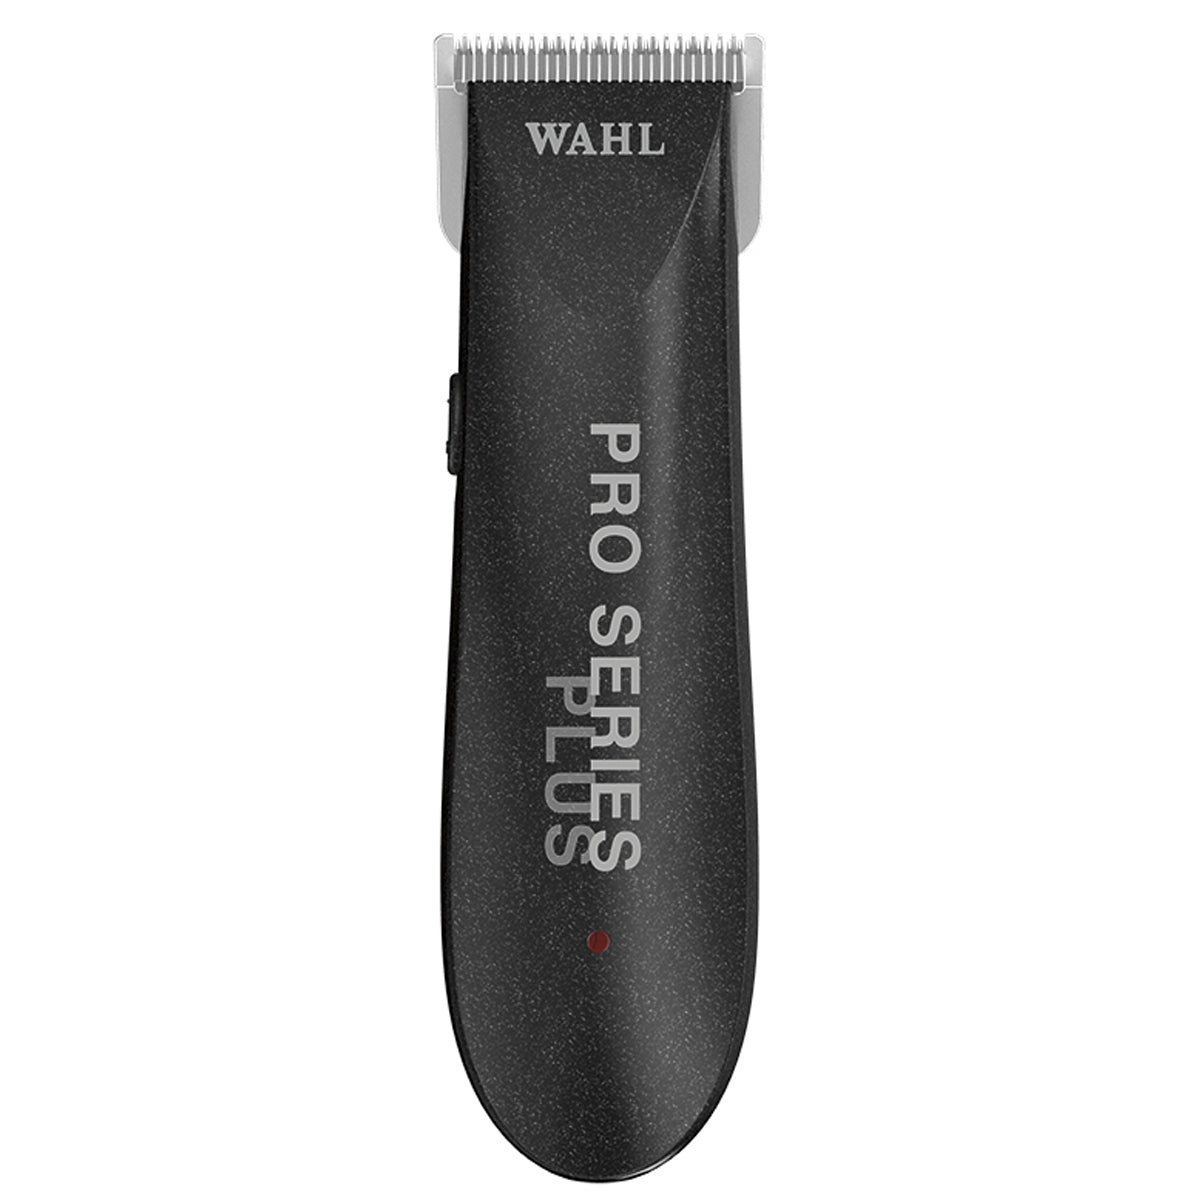 Wahl Pro Series Plus Cordless Clipper